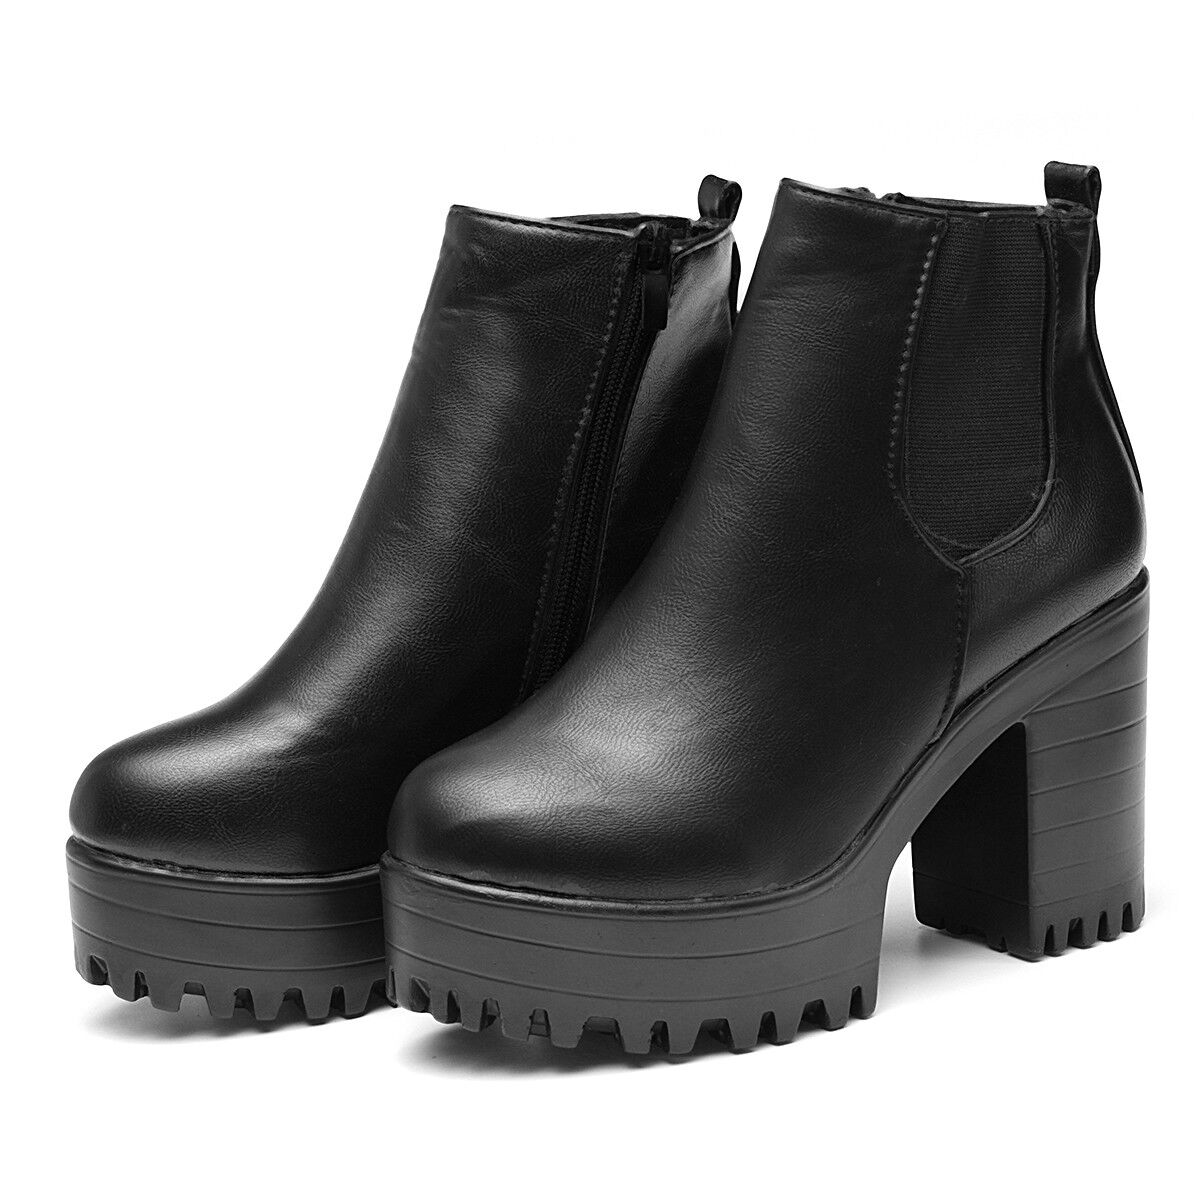 f1bc955689e9 Details about Stylish Women Chunky Platform Ankle Boots Heel High Chelsea  Slip On Bootie Shoes